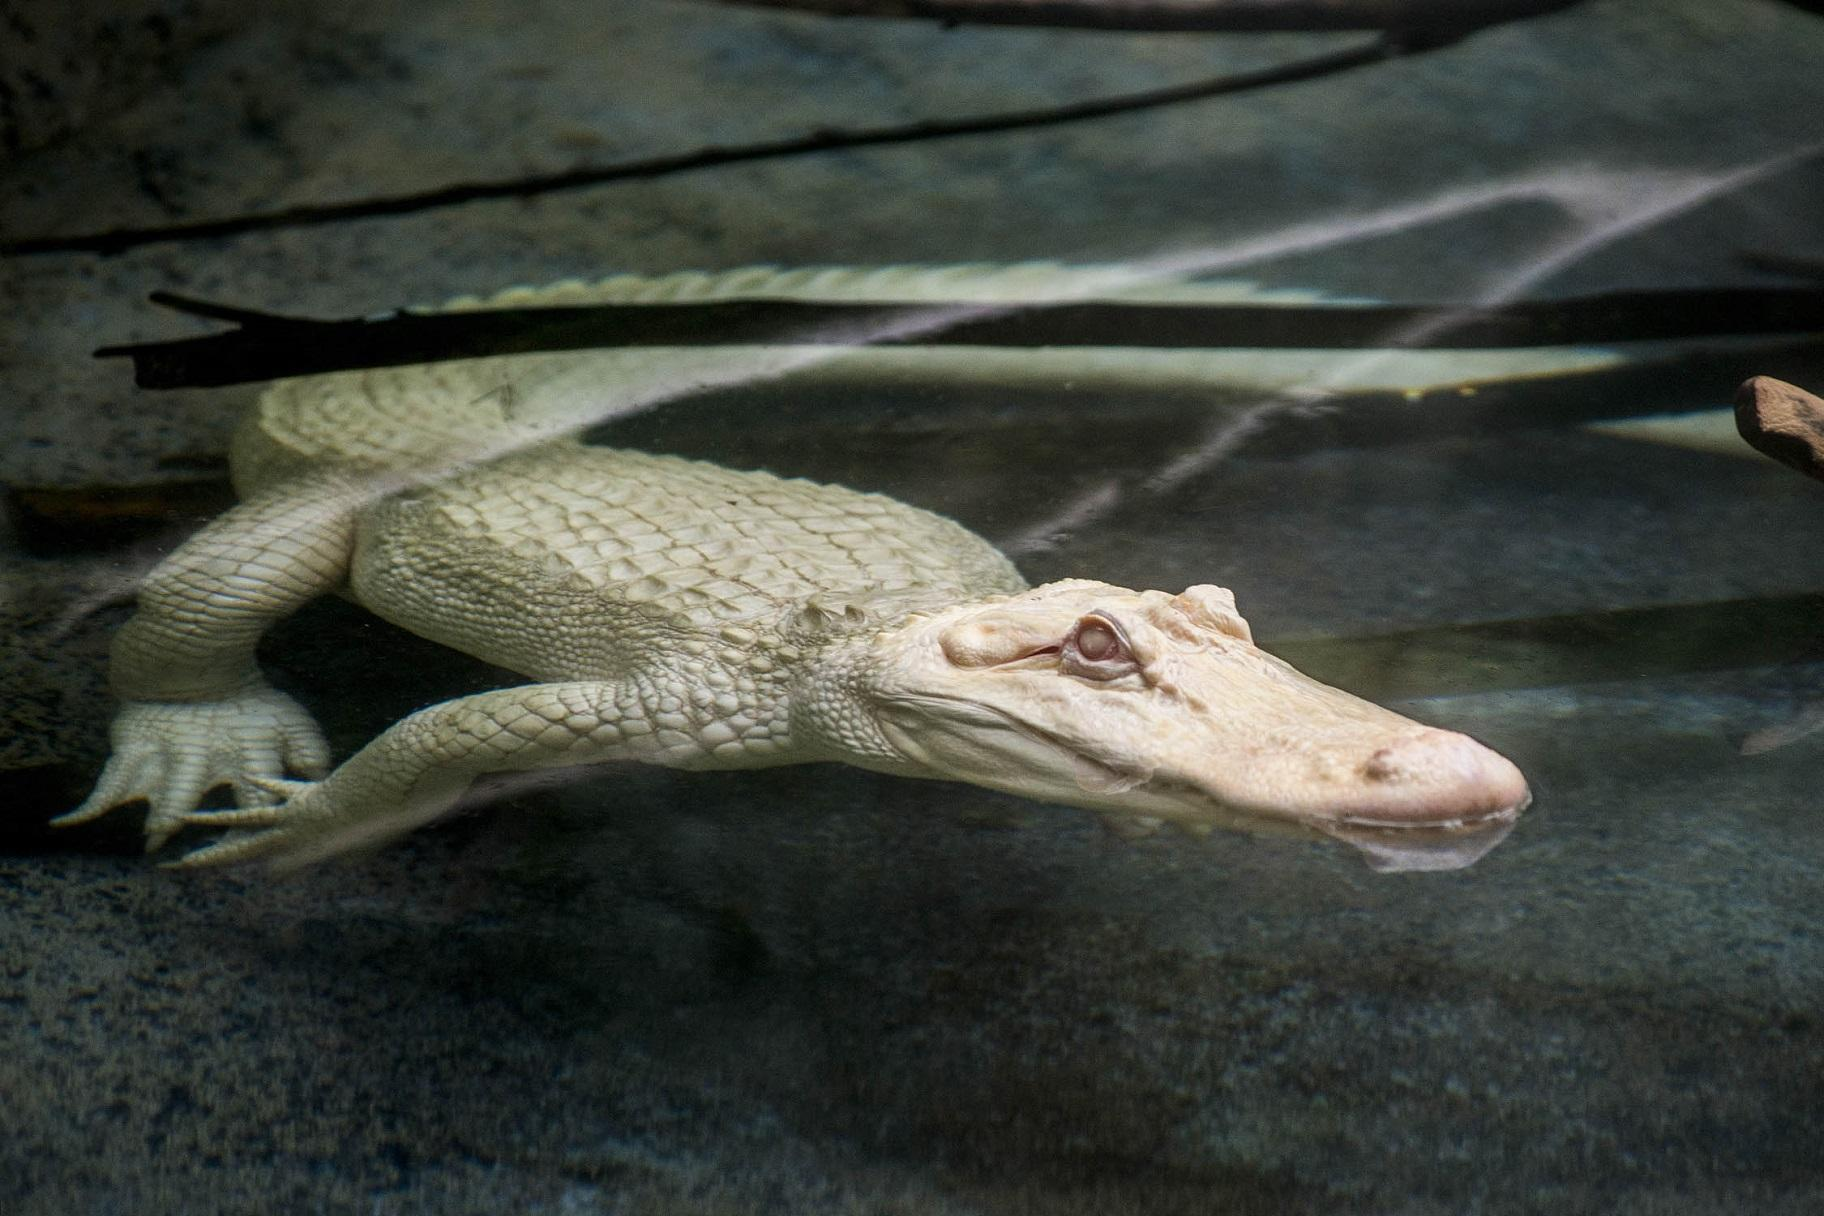 Snowflake, a 7-foot-long albino American alligator, will reside at Brookfield Zoo through September. (Kelly Tone / Chicago Zoological Society)